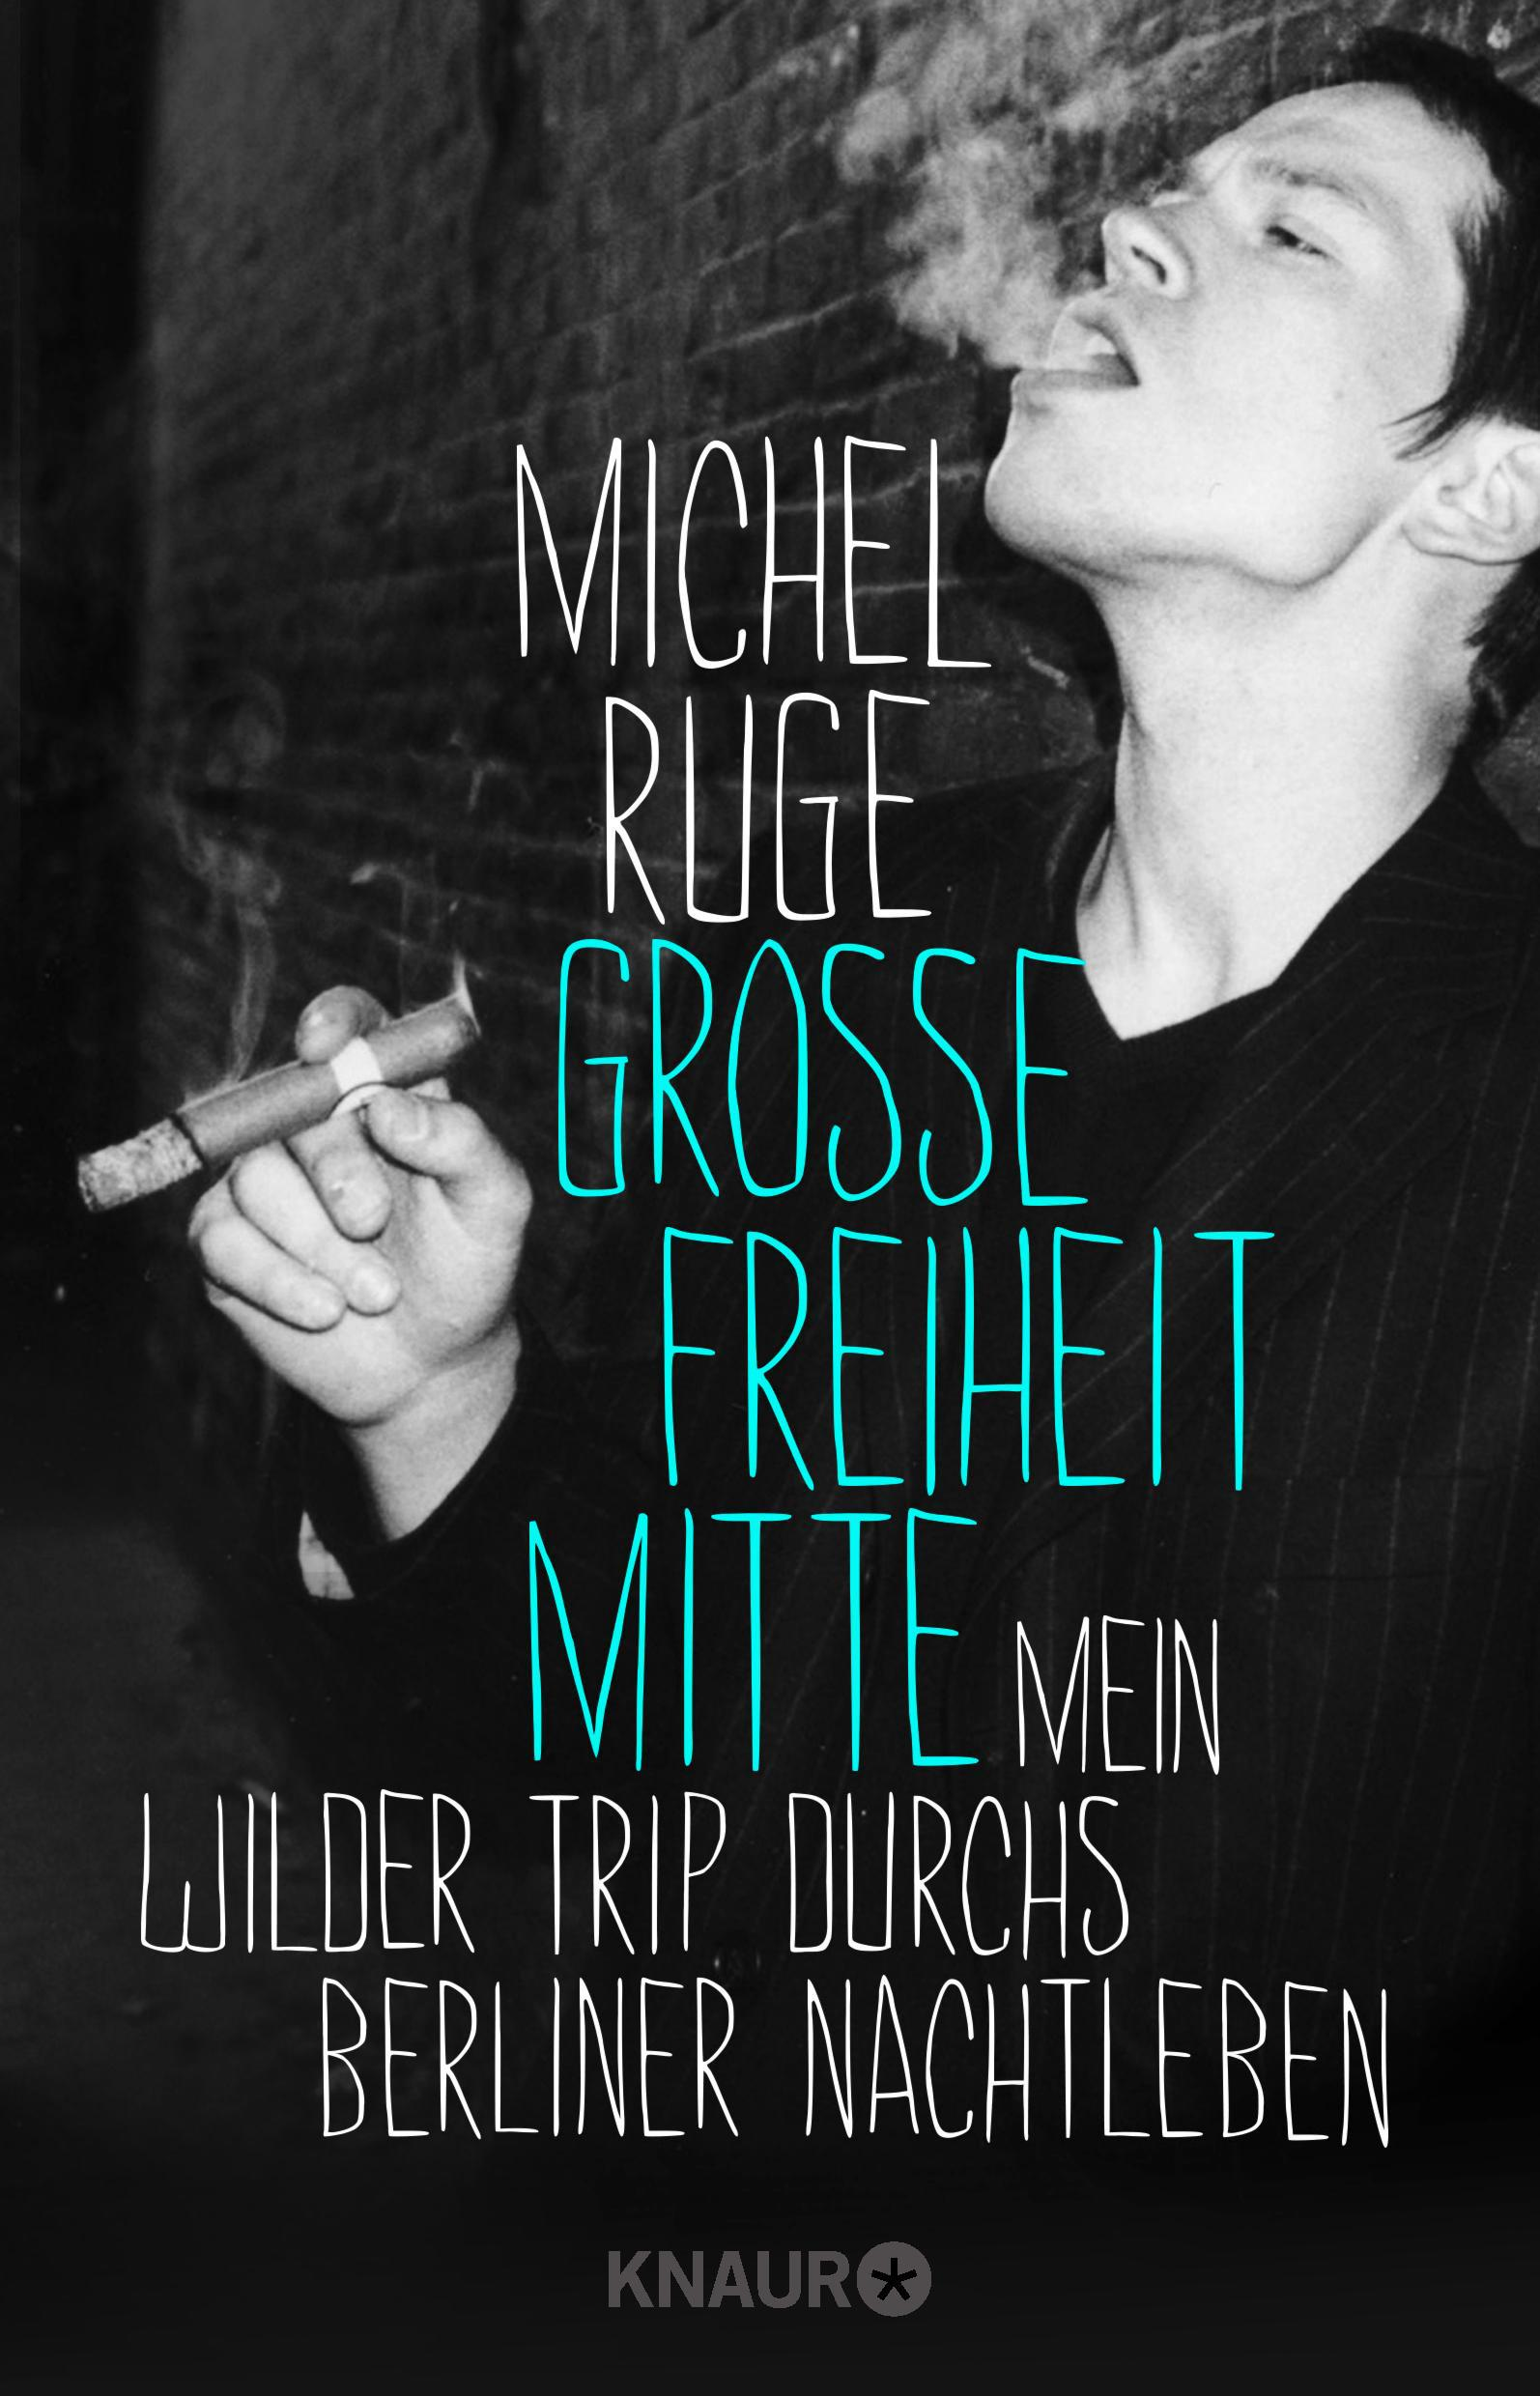 Michel Ruge